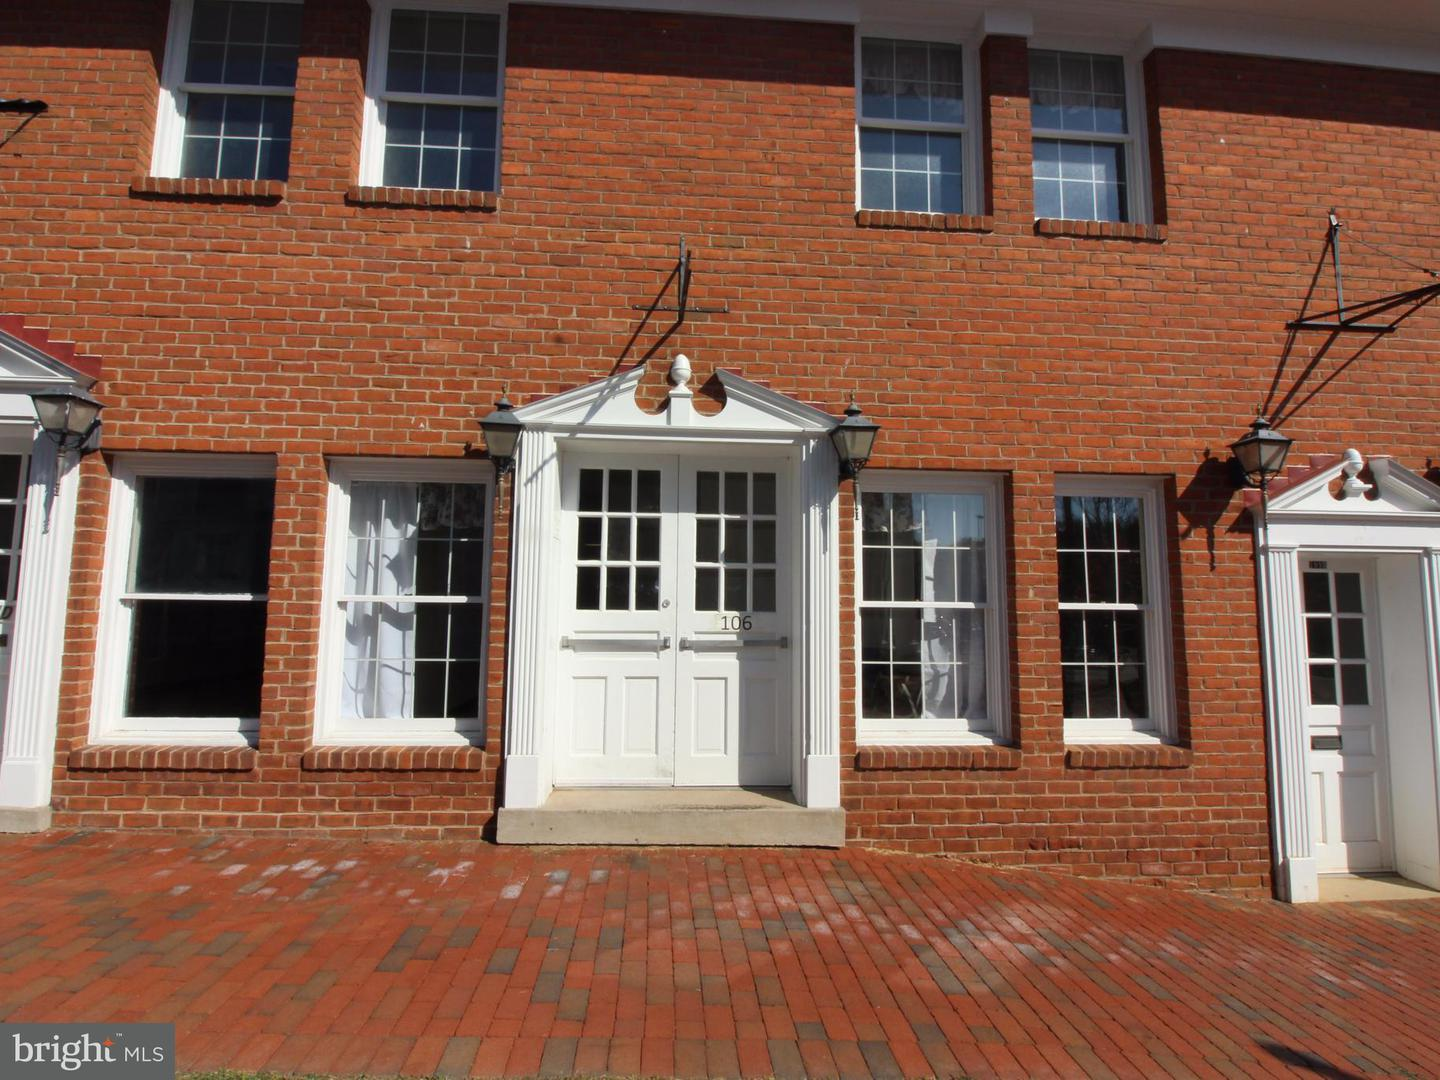 Other Residential for Rent at 109n Main St Woodstock, Virginia 22664 United States